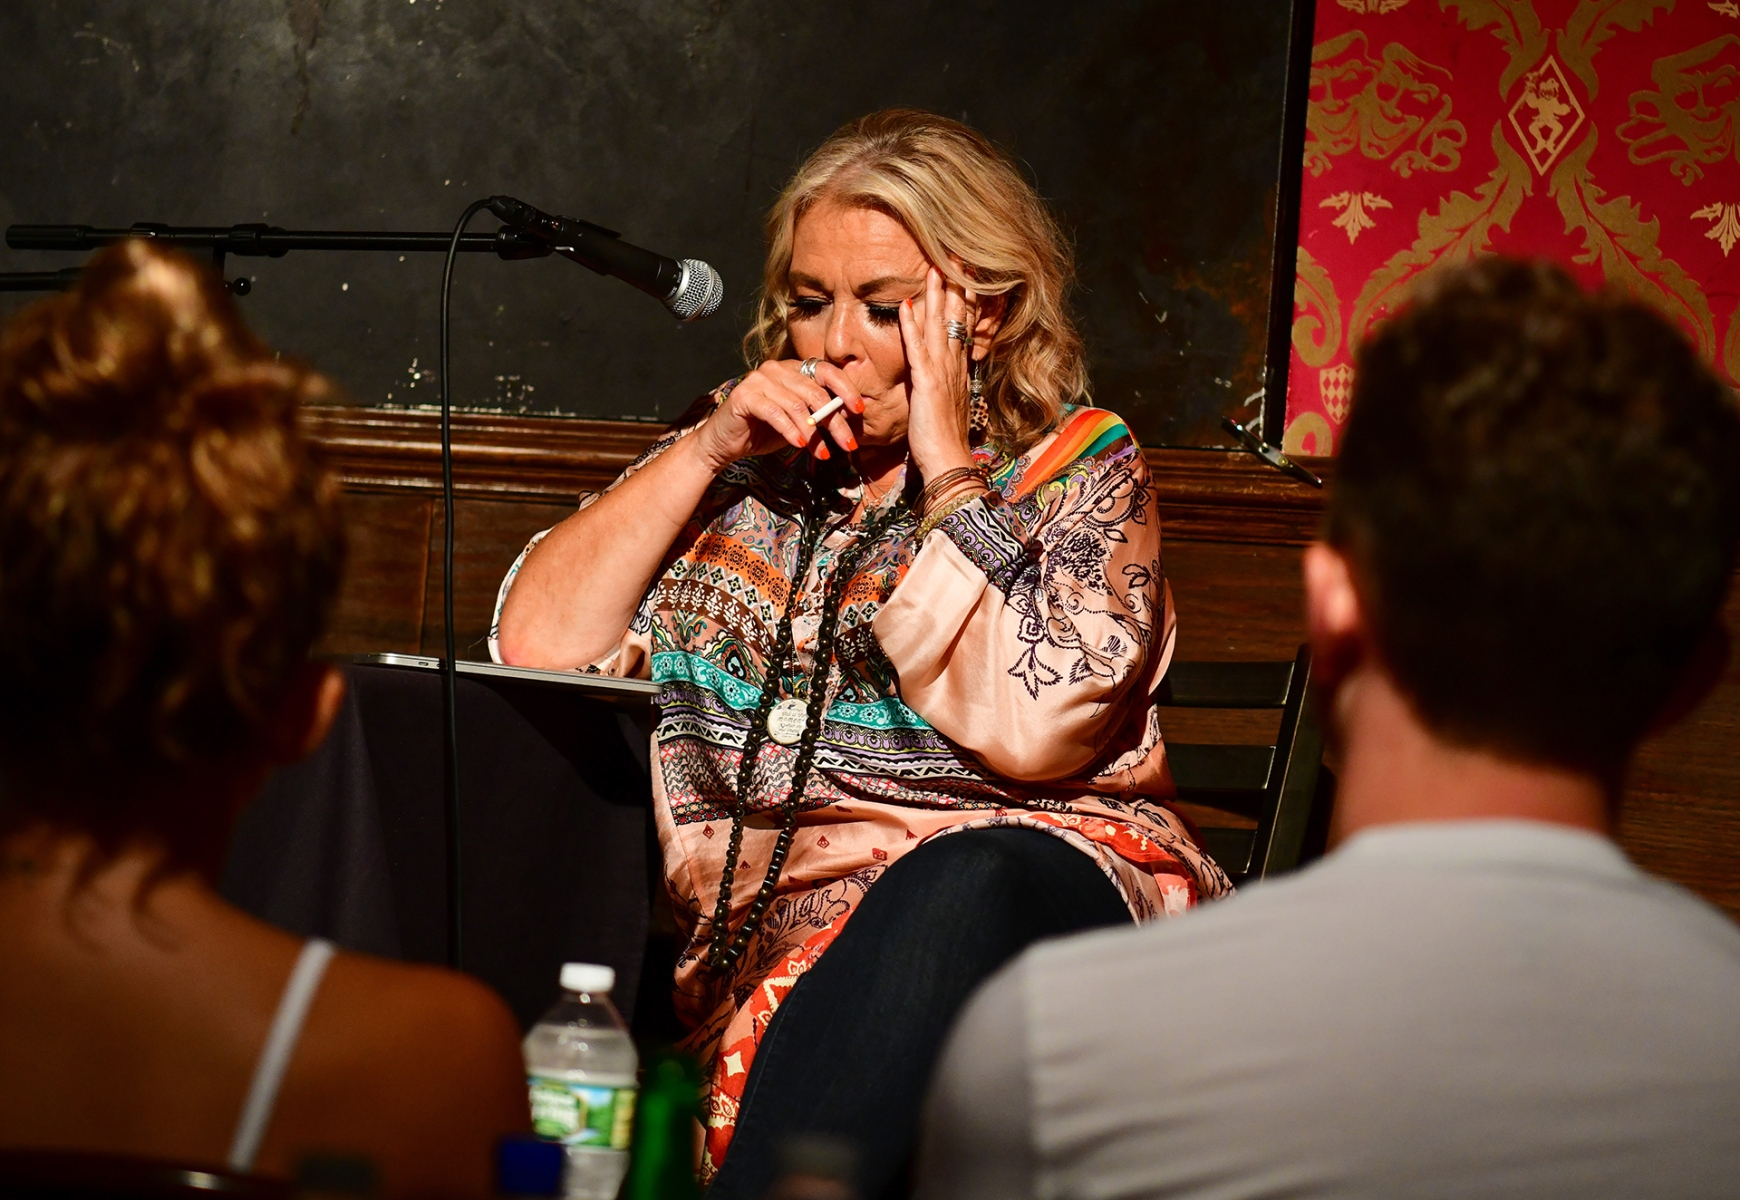 Roseanne Barr attends live podcast at Stand Up NY on July 26, 2018 in New York City as her first public appearance since she was fired from her ABC show. (James Devaney/Getty Images)